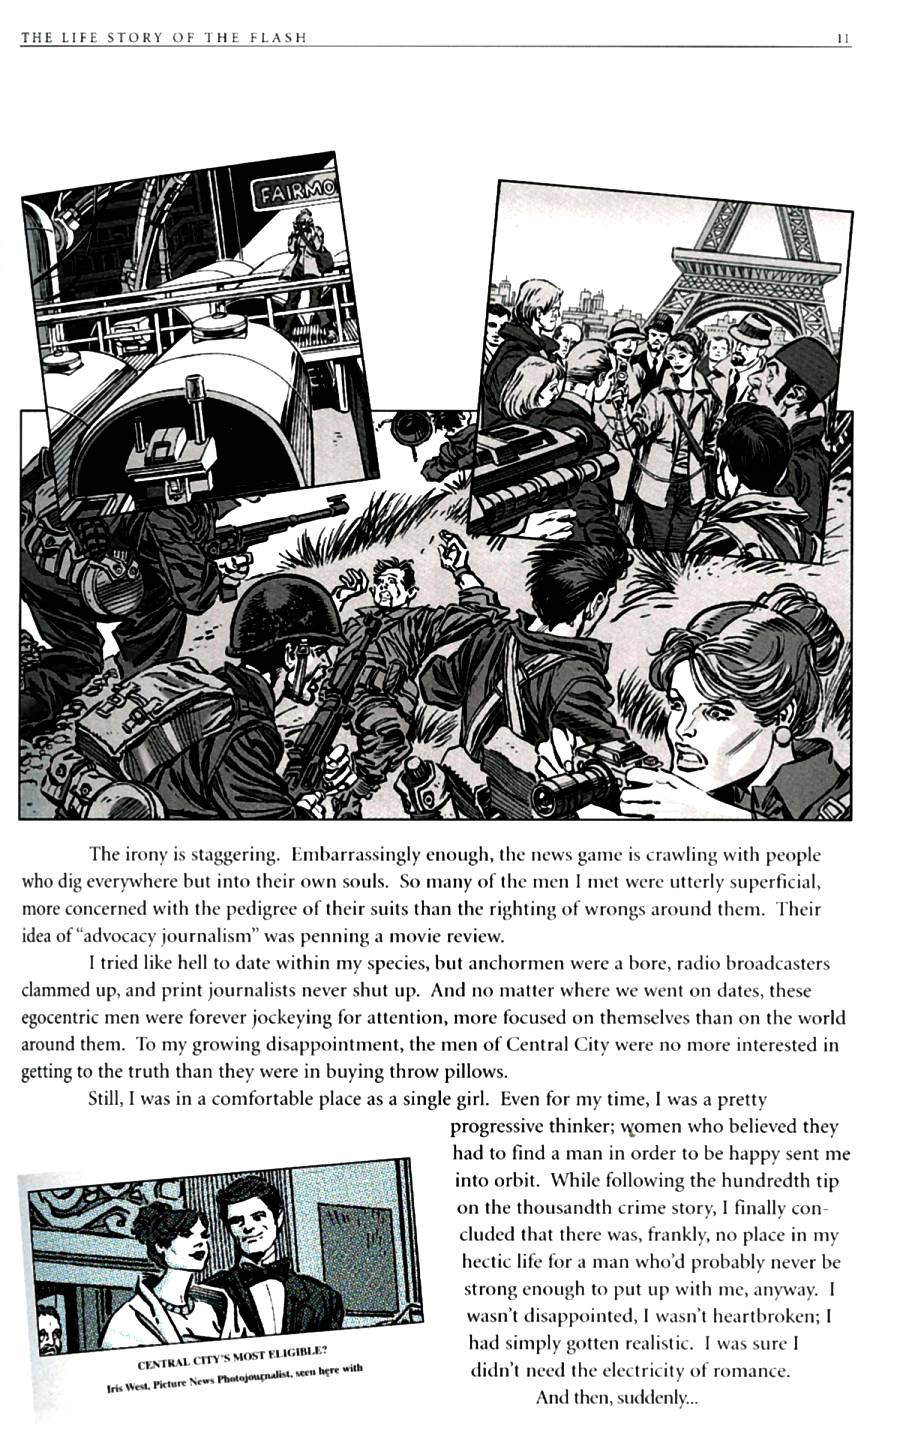 Read online The Life Story of the Flash comic -  Issue # Full - 13